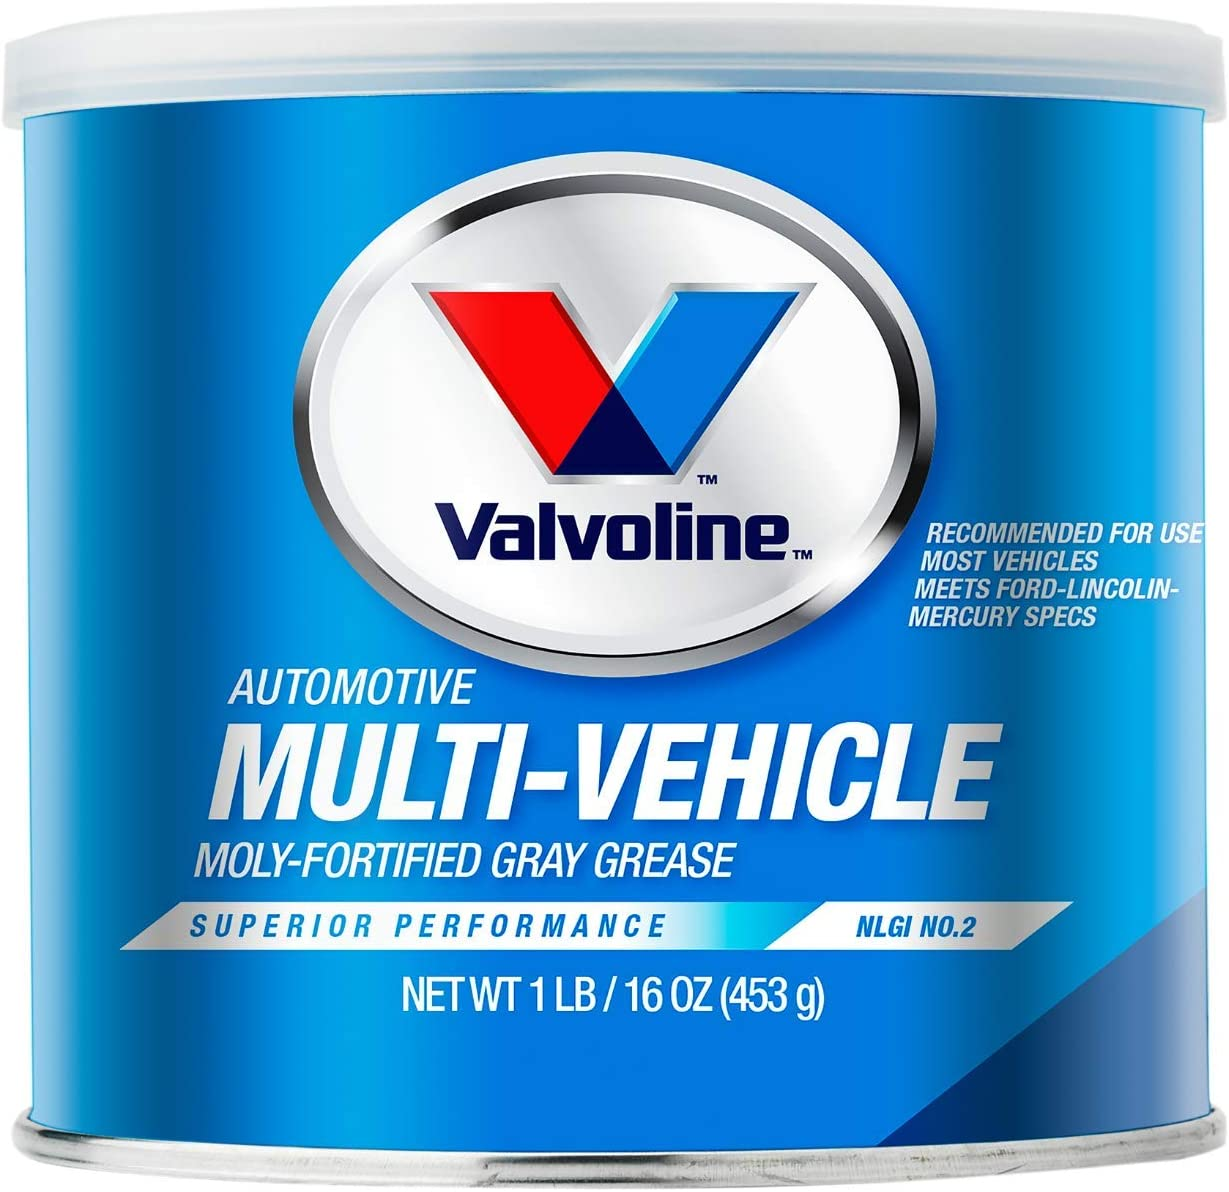 Valvoline Multi-Vehicle Moly-Fortified Gray Grease